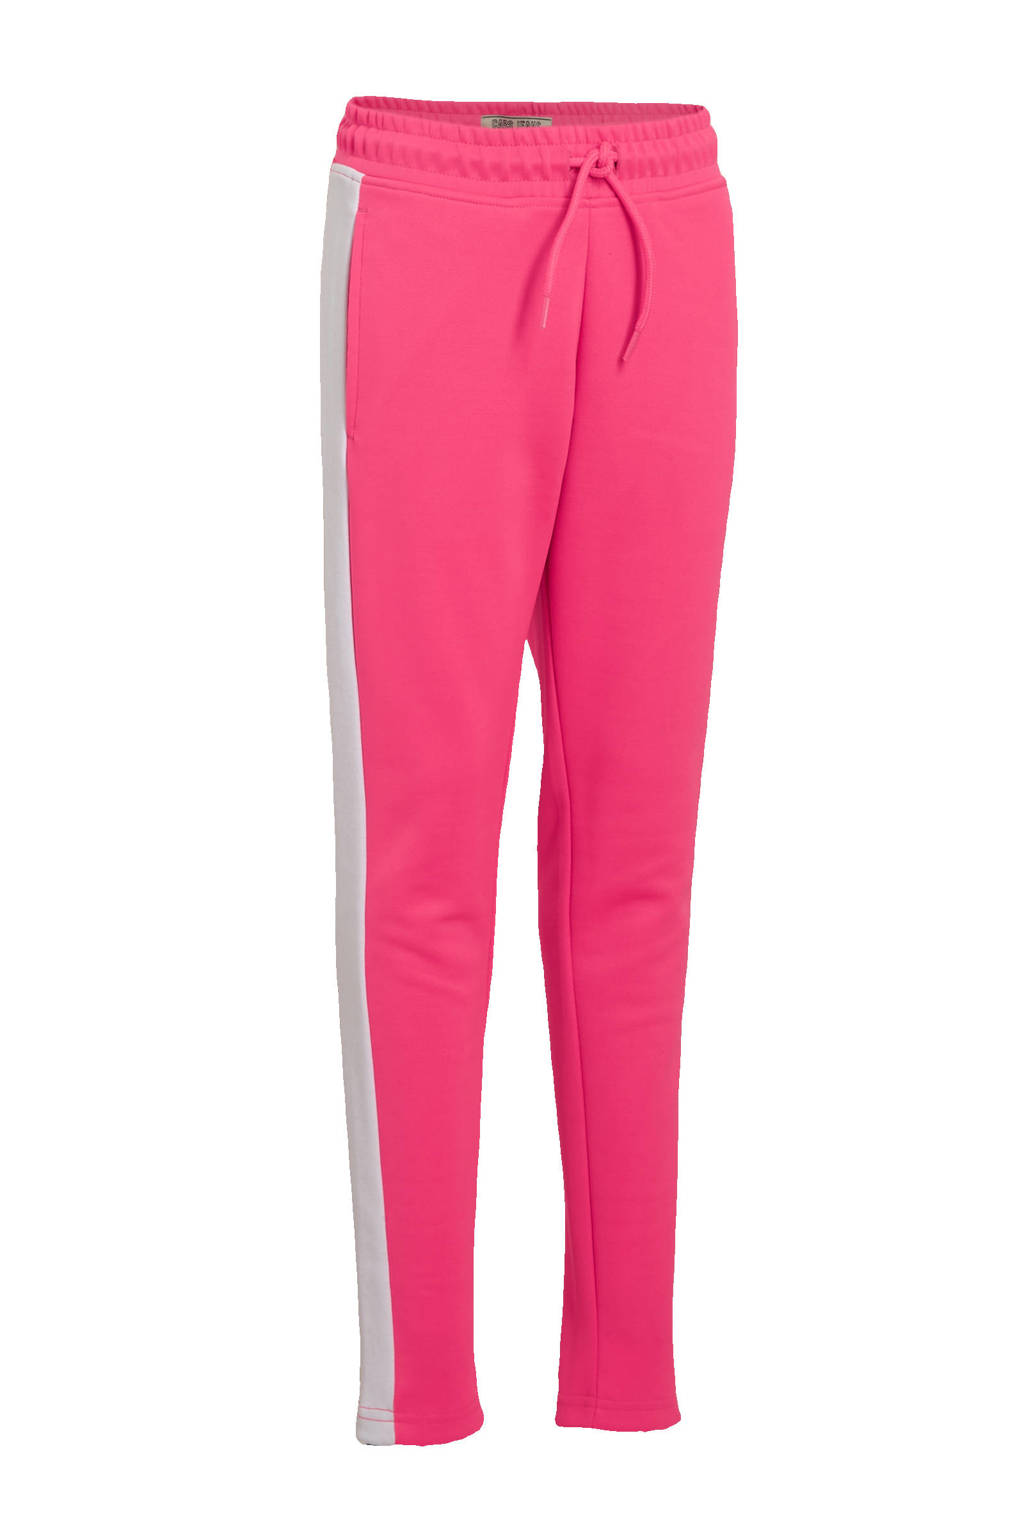 Cars regular fit joggingbroek Sheya met zijstreep fuchsia/wit, Fuchsia/wit